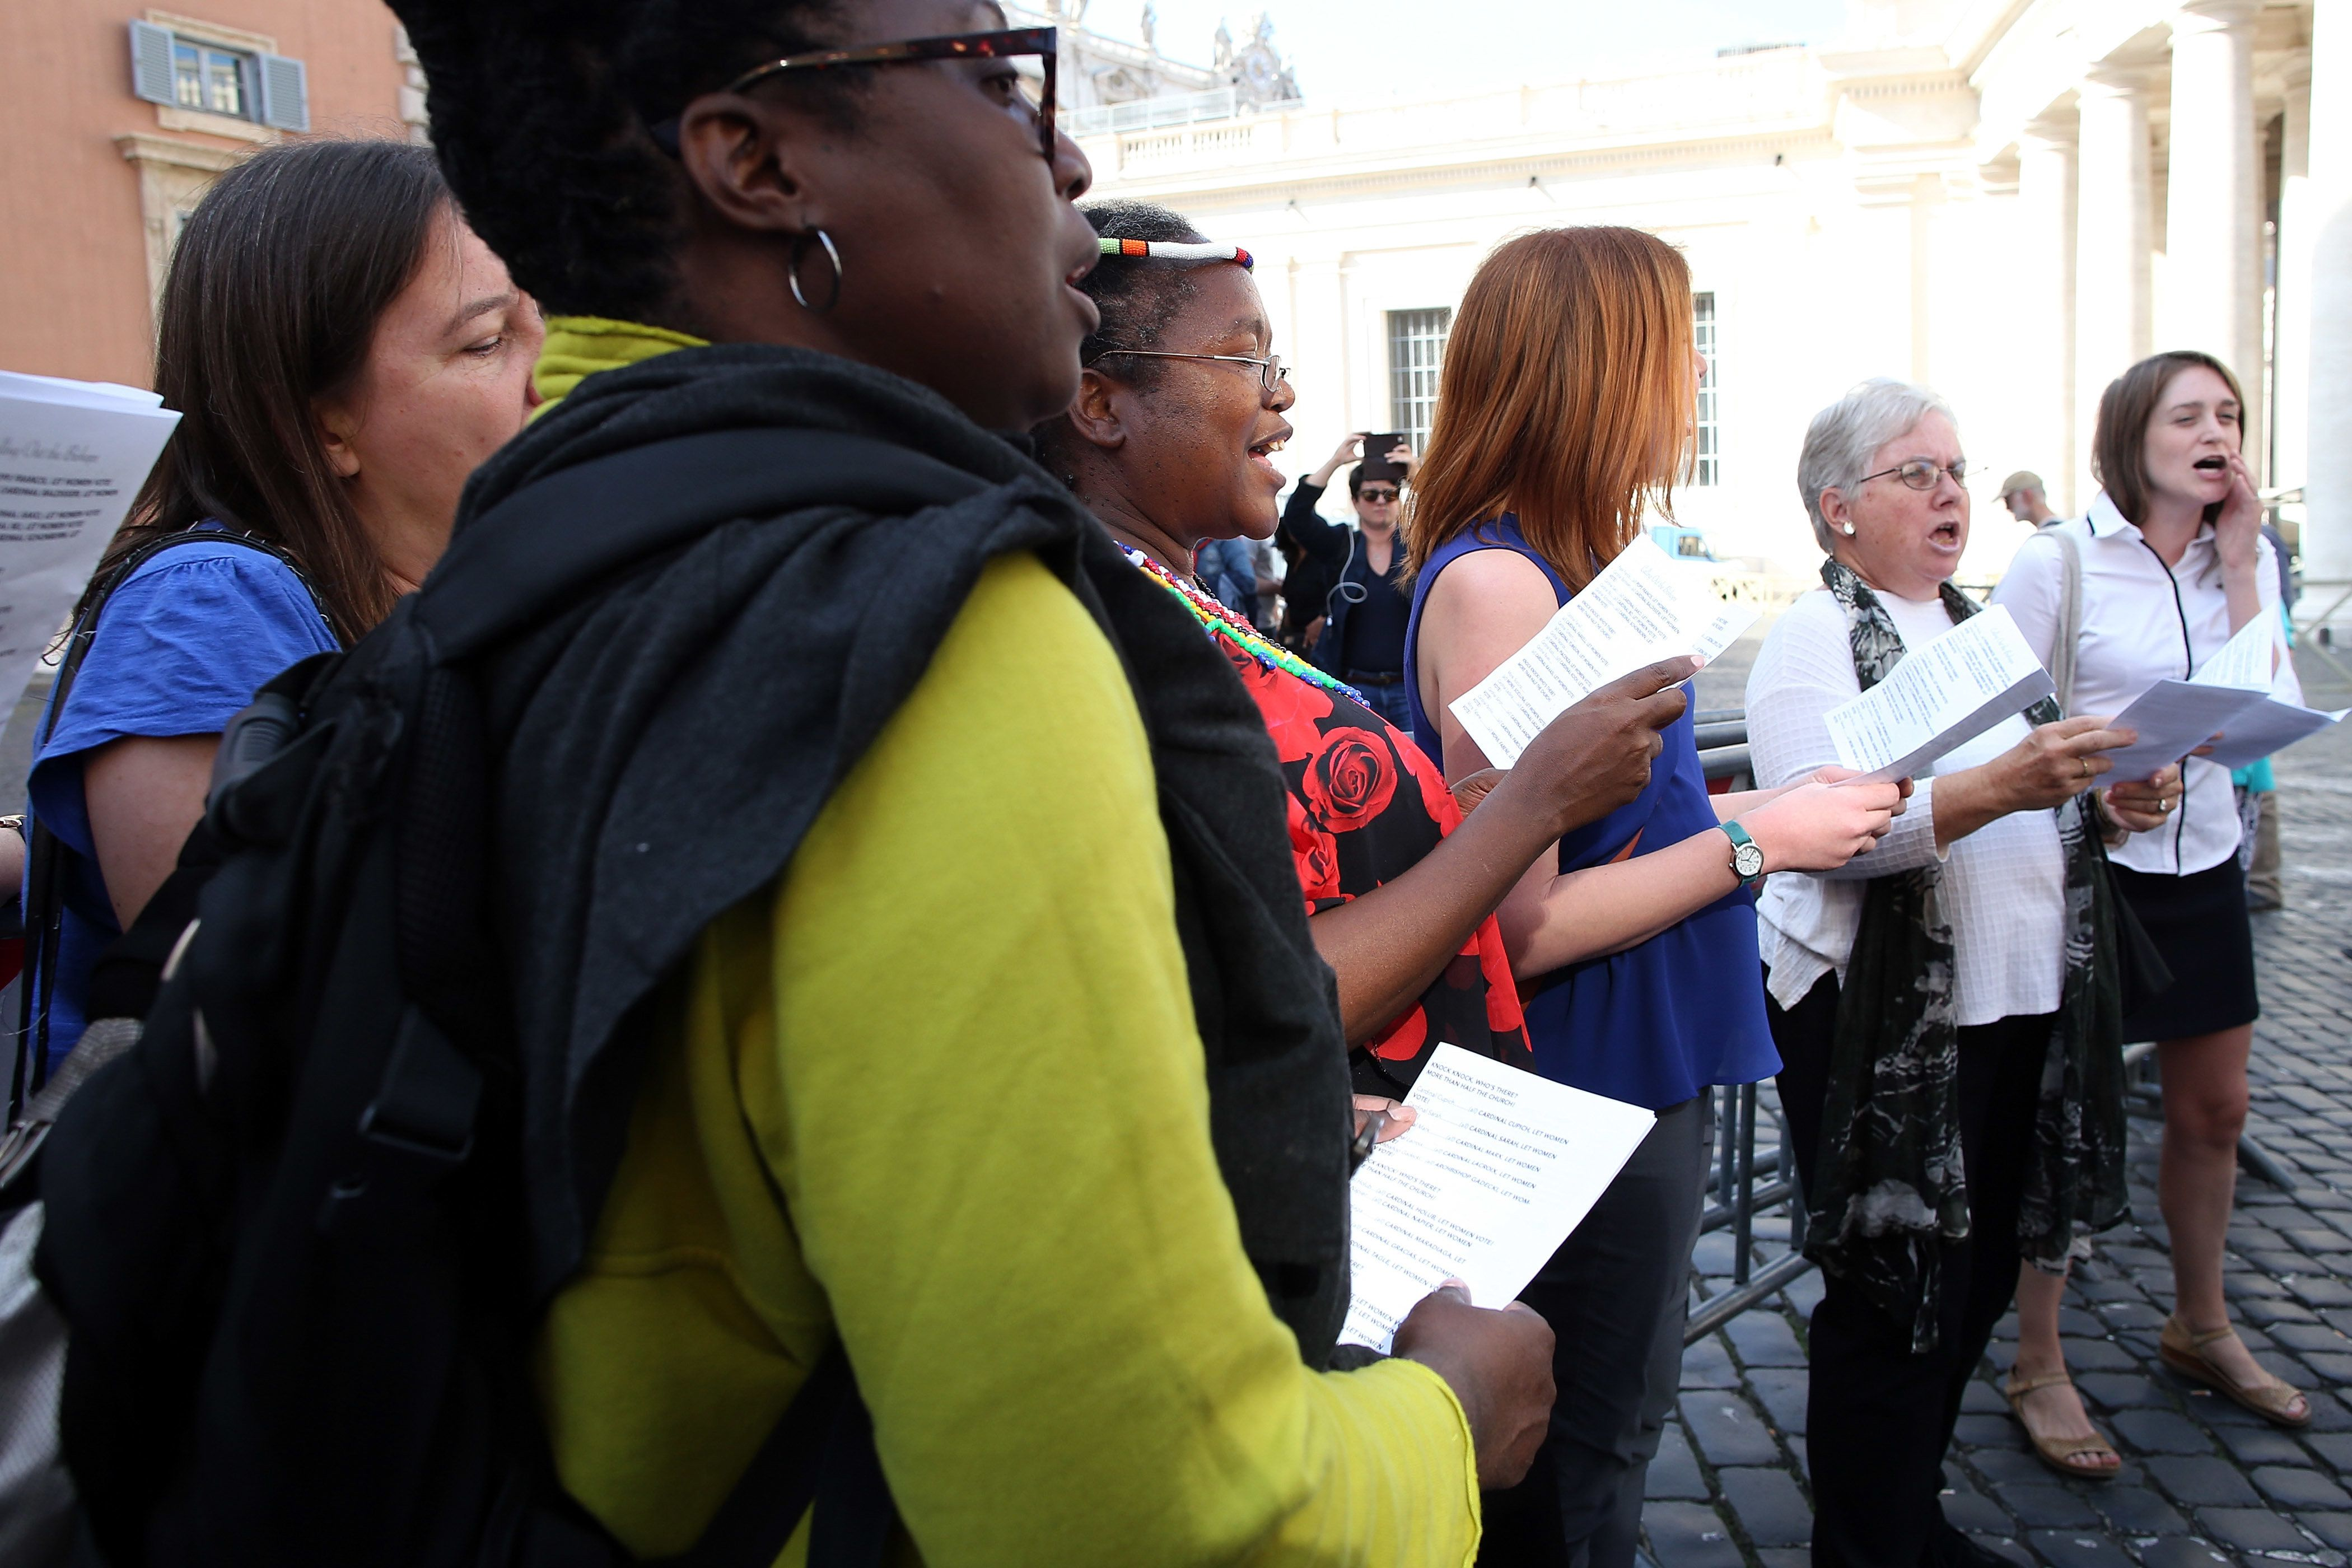 VATICAN CITY, VATICAN - OCTOBER 03:  A group of WOC (Women's Ordination Conference) hold a protest choir in front at the Vatican entrance of the Synod Hall  before the opening of the Synod of Bishops on 'Young People' on October 3, 2018 in Vatican City, Vatican.  A Synod of Bishops is a crucial moment in the life of the Church, a time for it to reflect on its current status and look to its future.  (Photo by Franco Origlia/Getty Images)